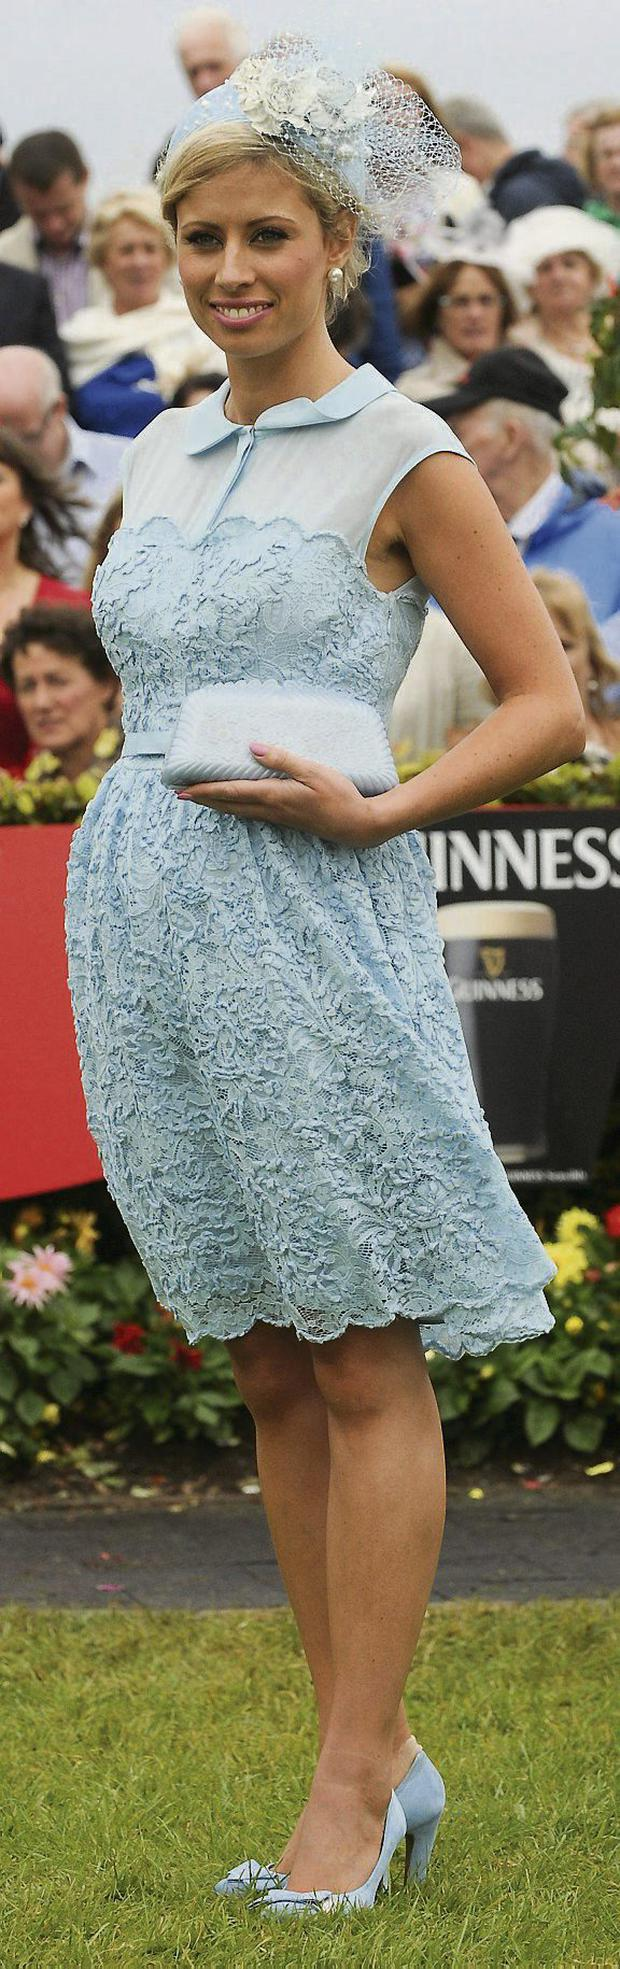 Rachelle Guiry was crowned best dressed. Photo: Sportsfile